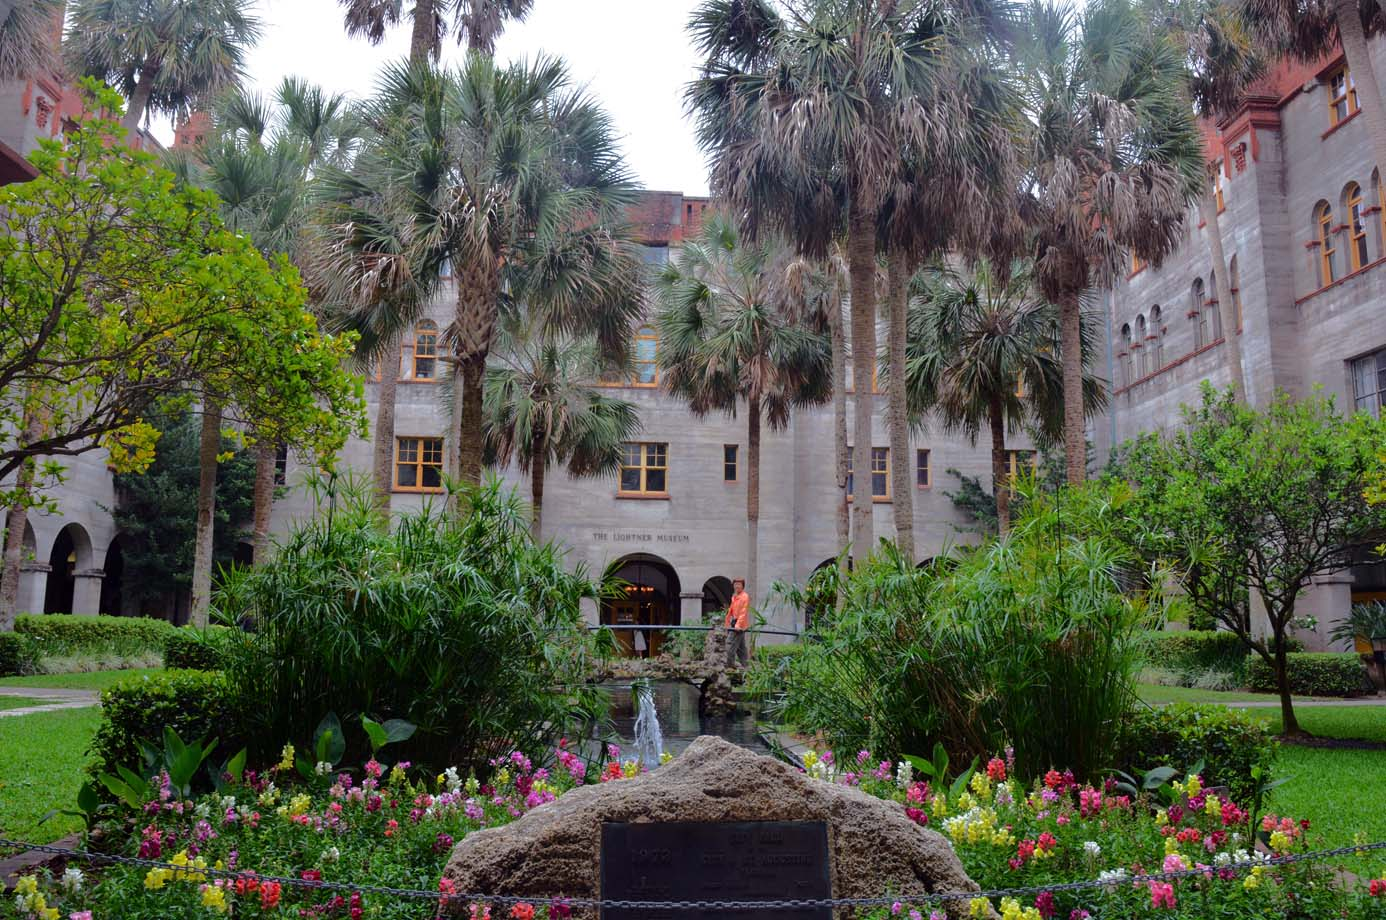 Lightner Museum and shop with colorful courtyard